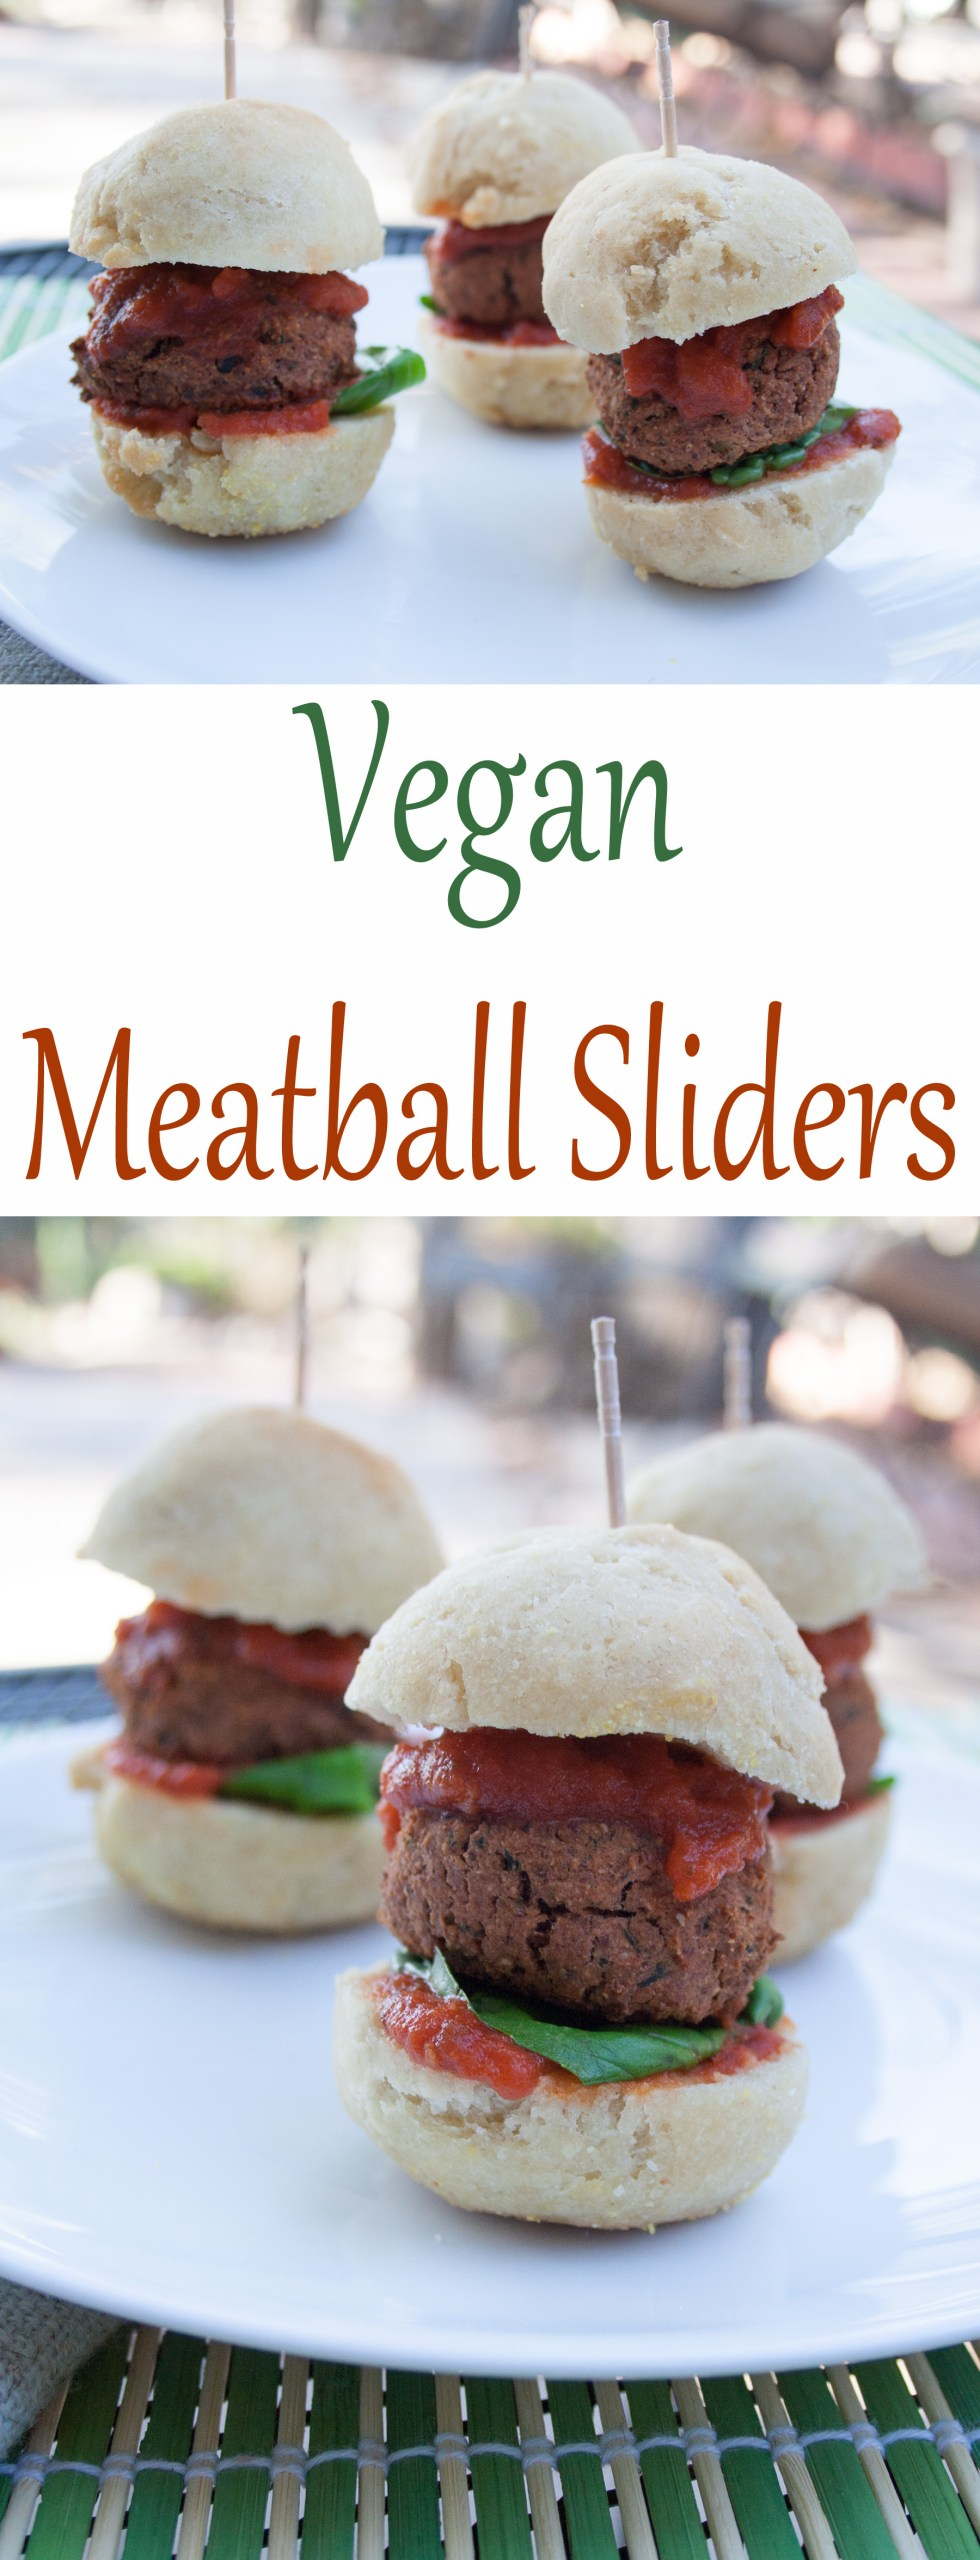 Vegan Meatball Sliders collage photo with text in the middle.